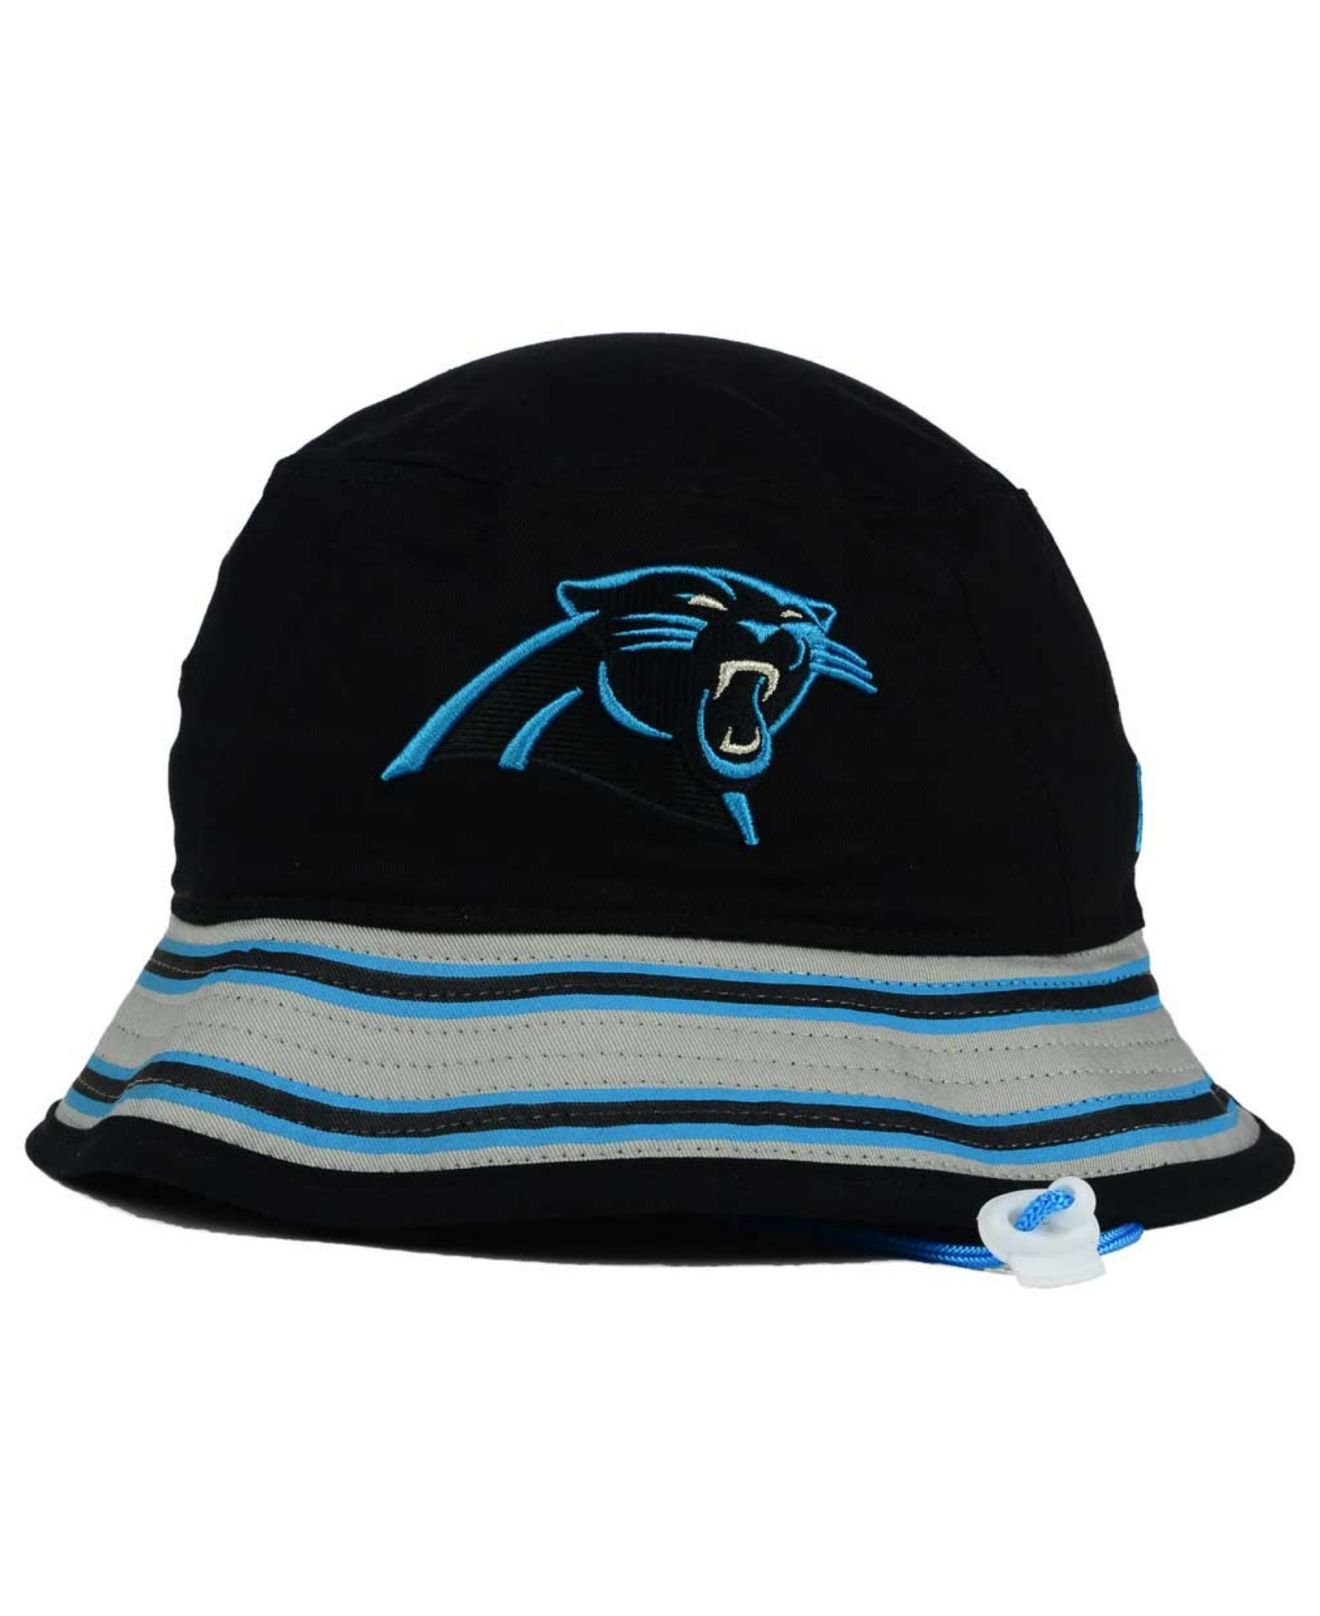 4e92a974ffd05 ... greece lyst ktz carolina panthers team stripe bucket hat in blue for  men 4bd6c 0a275